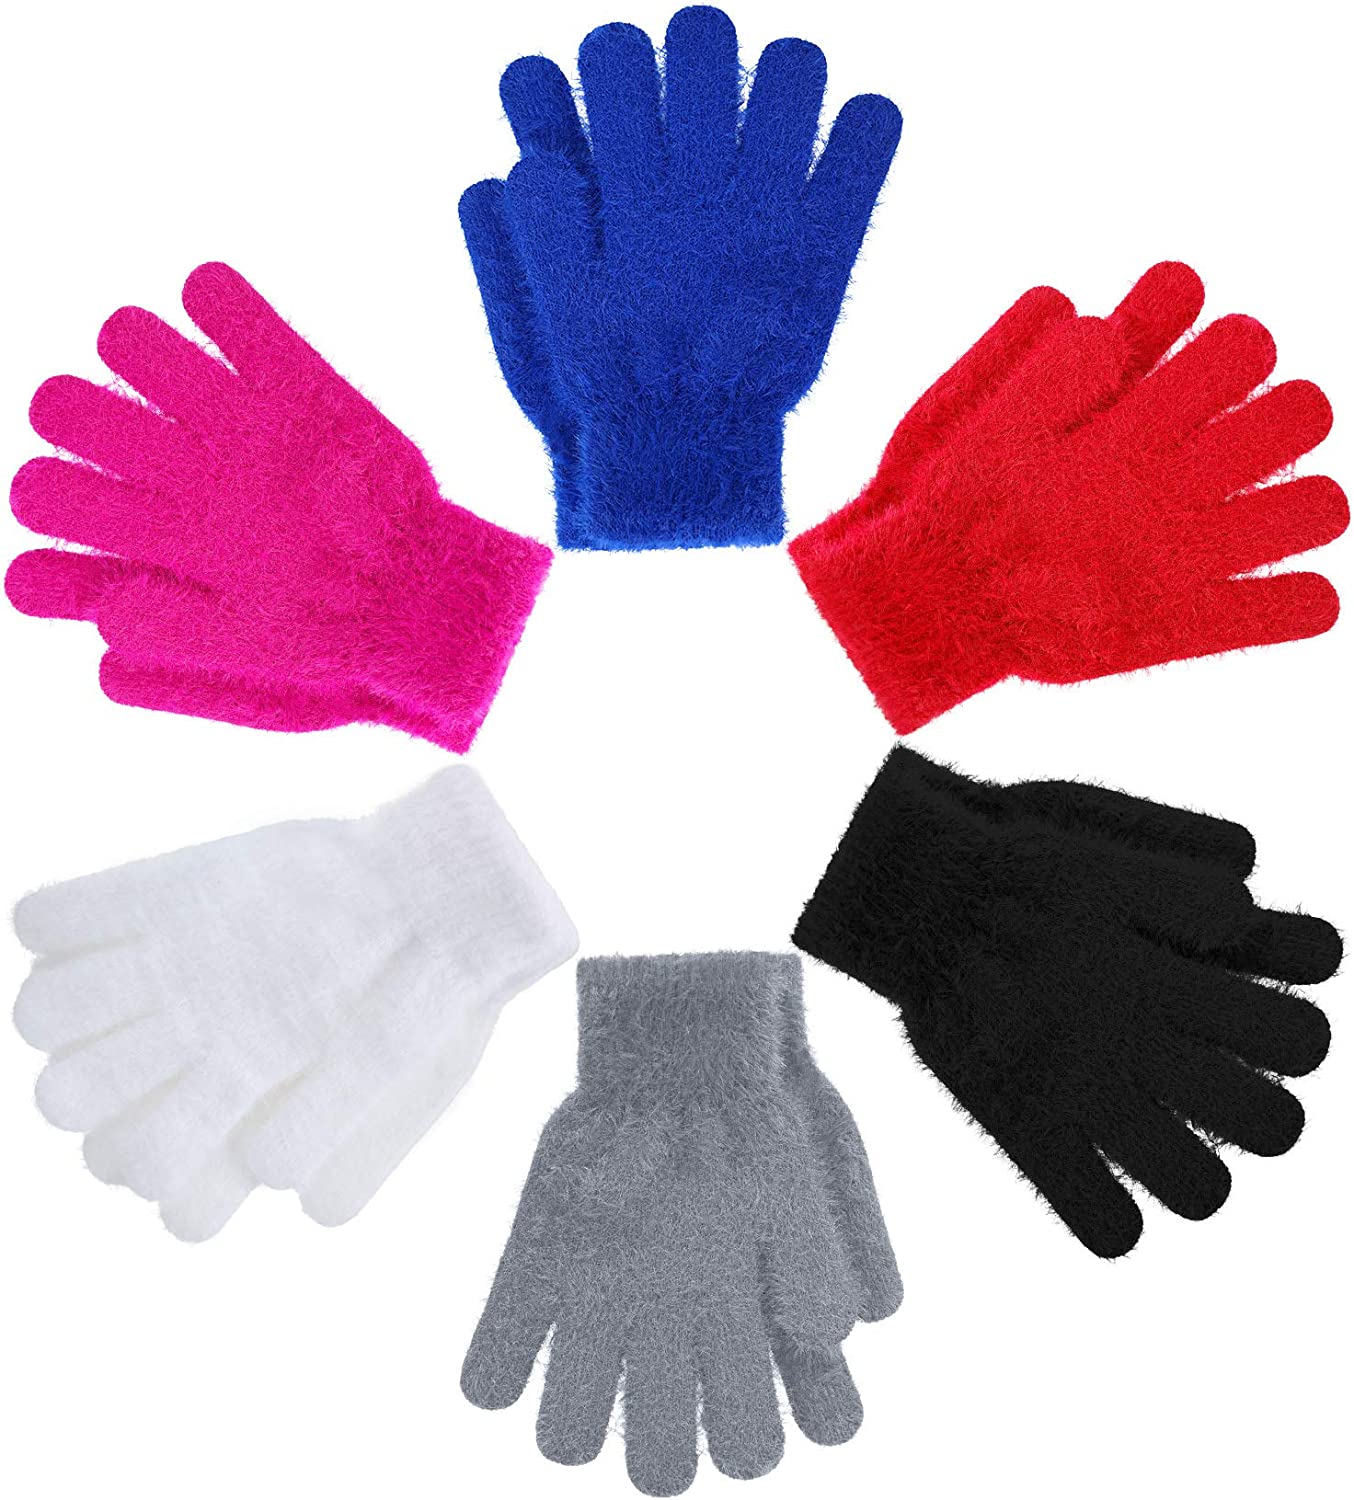 6 Pairs Kids Magic Stretch Gloves Winter Soft Knitted Gloves Toddler Colorful Warm Gloves